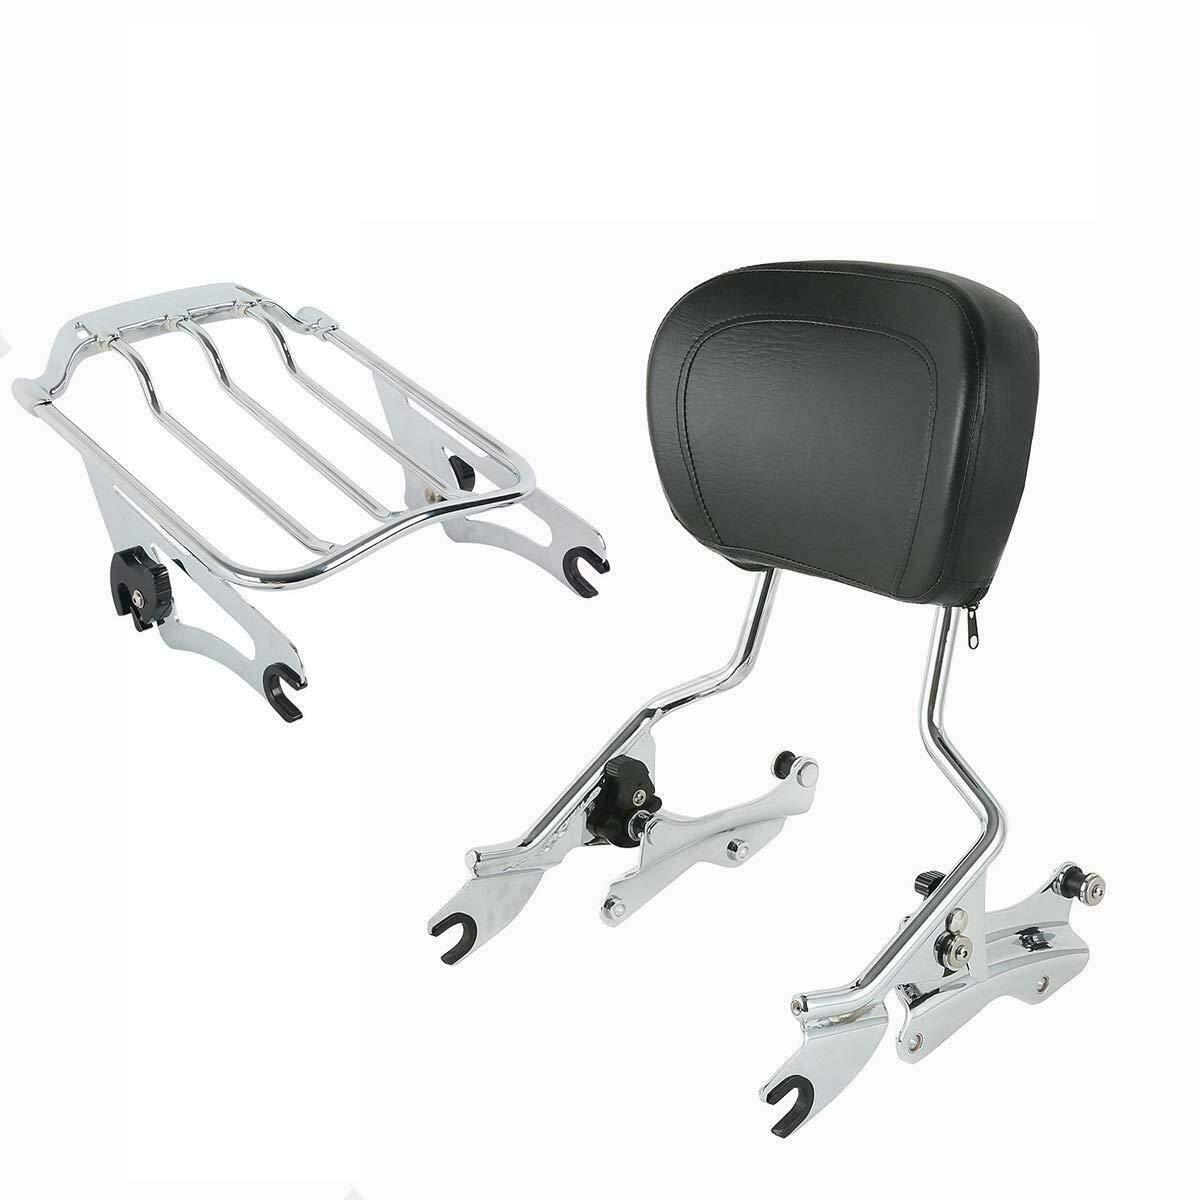 TCMT Detachable Passenger Backrest Sissy Bar With 2 Up Air Wing Luggage Rack 4 Point Docking Hardware Kits Fits For Harley Touring 2009-2013